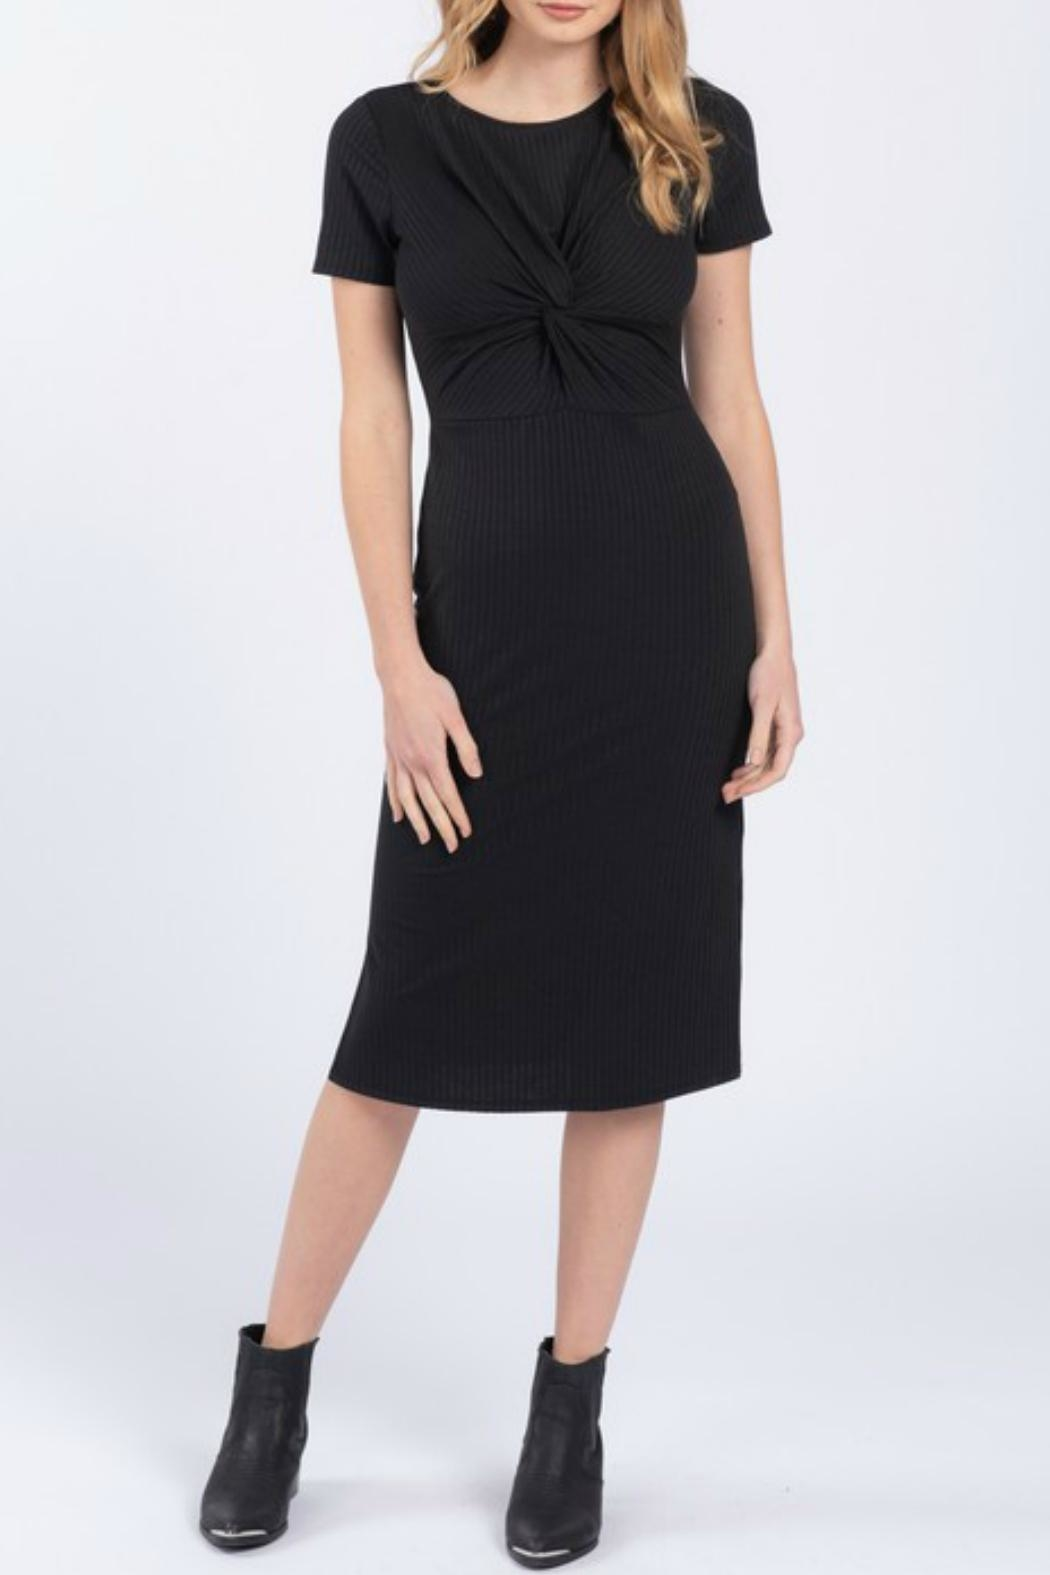 Everly Front Twist Dress - Main Image